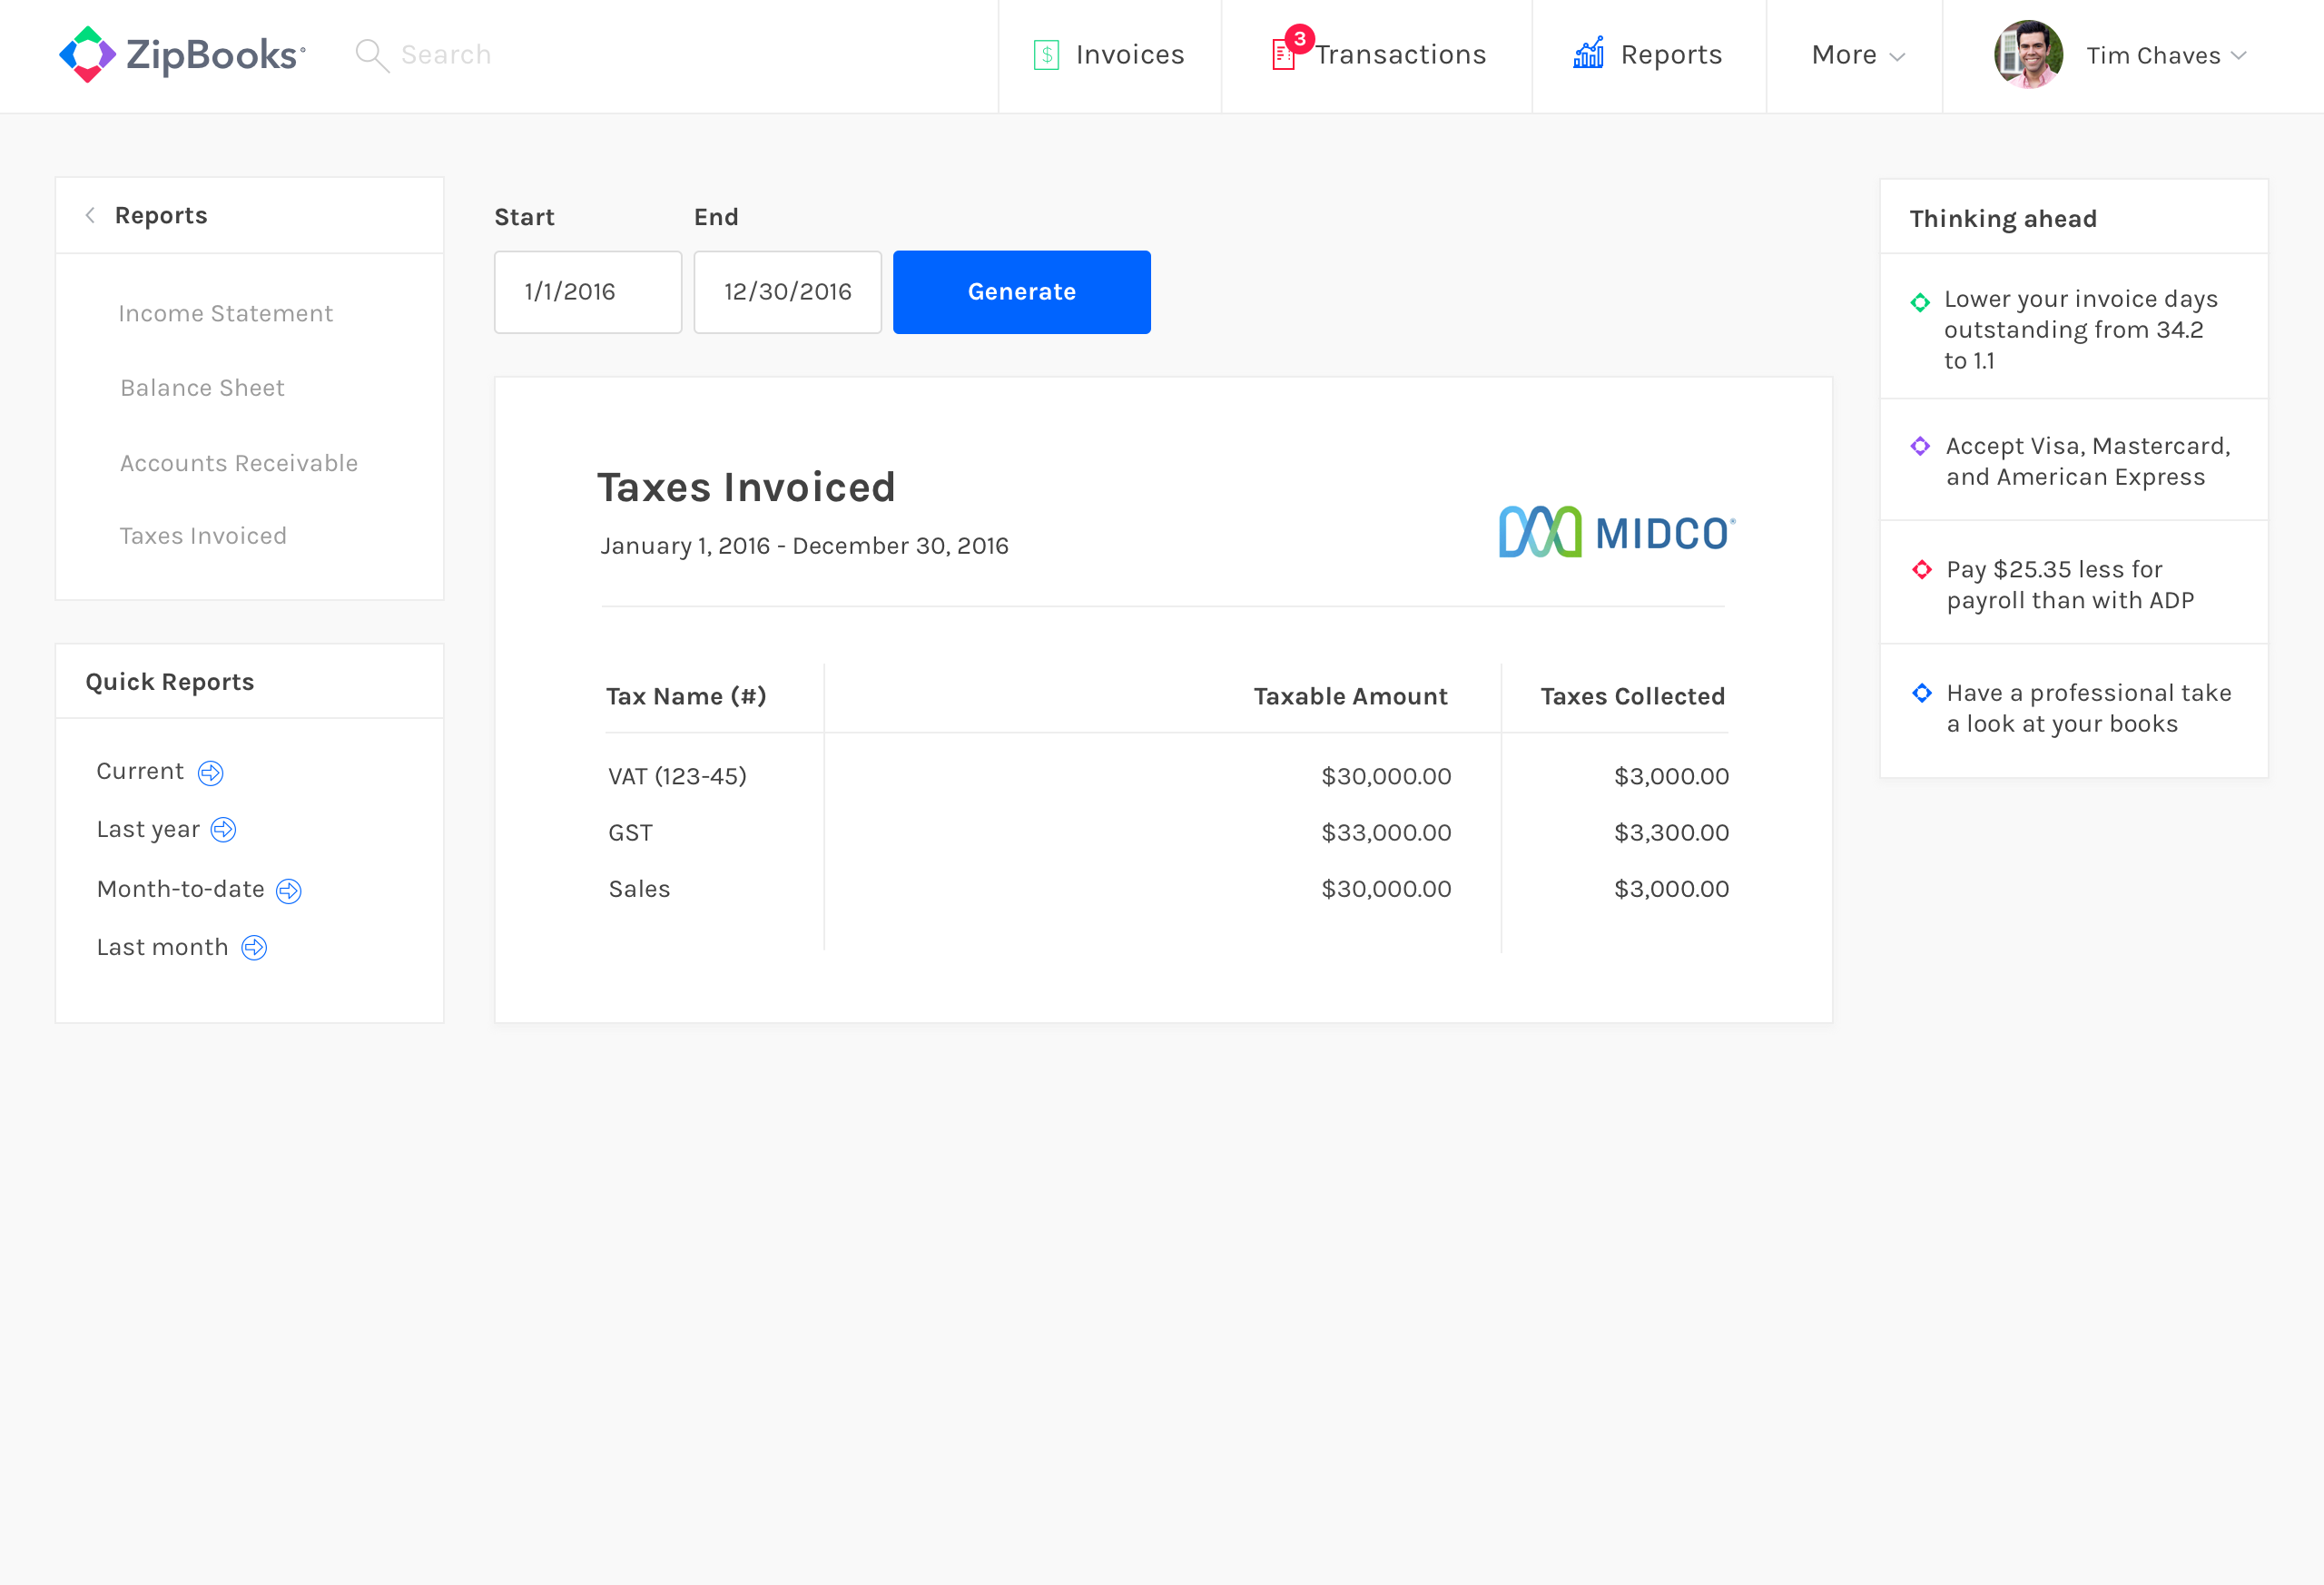 Invoiced Taxes preview